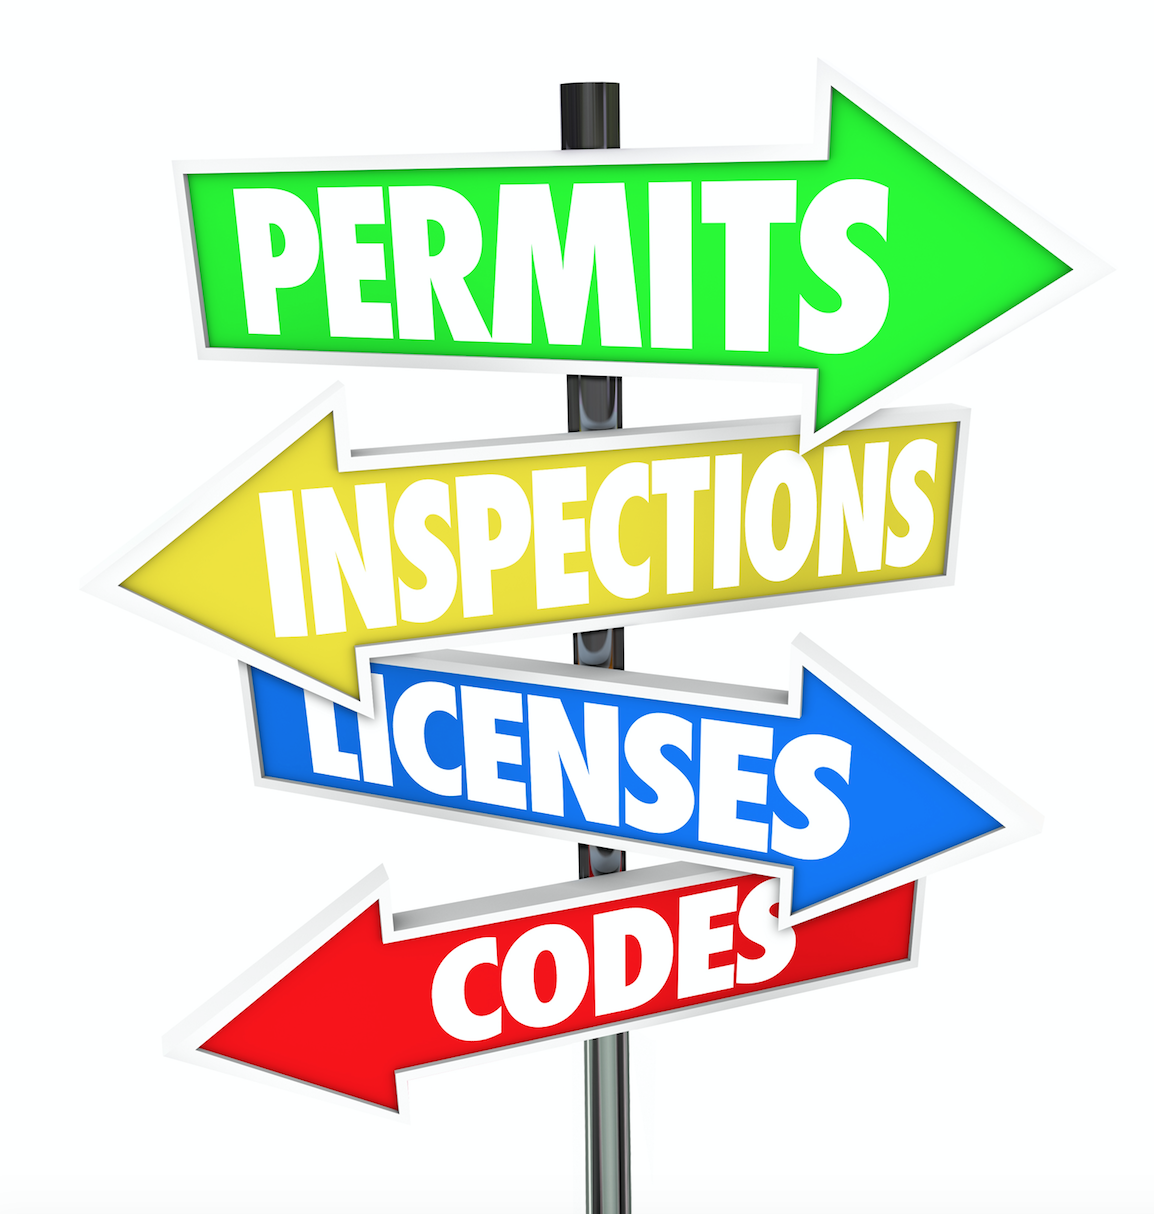 permits, inspections, licenses, codes